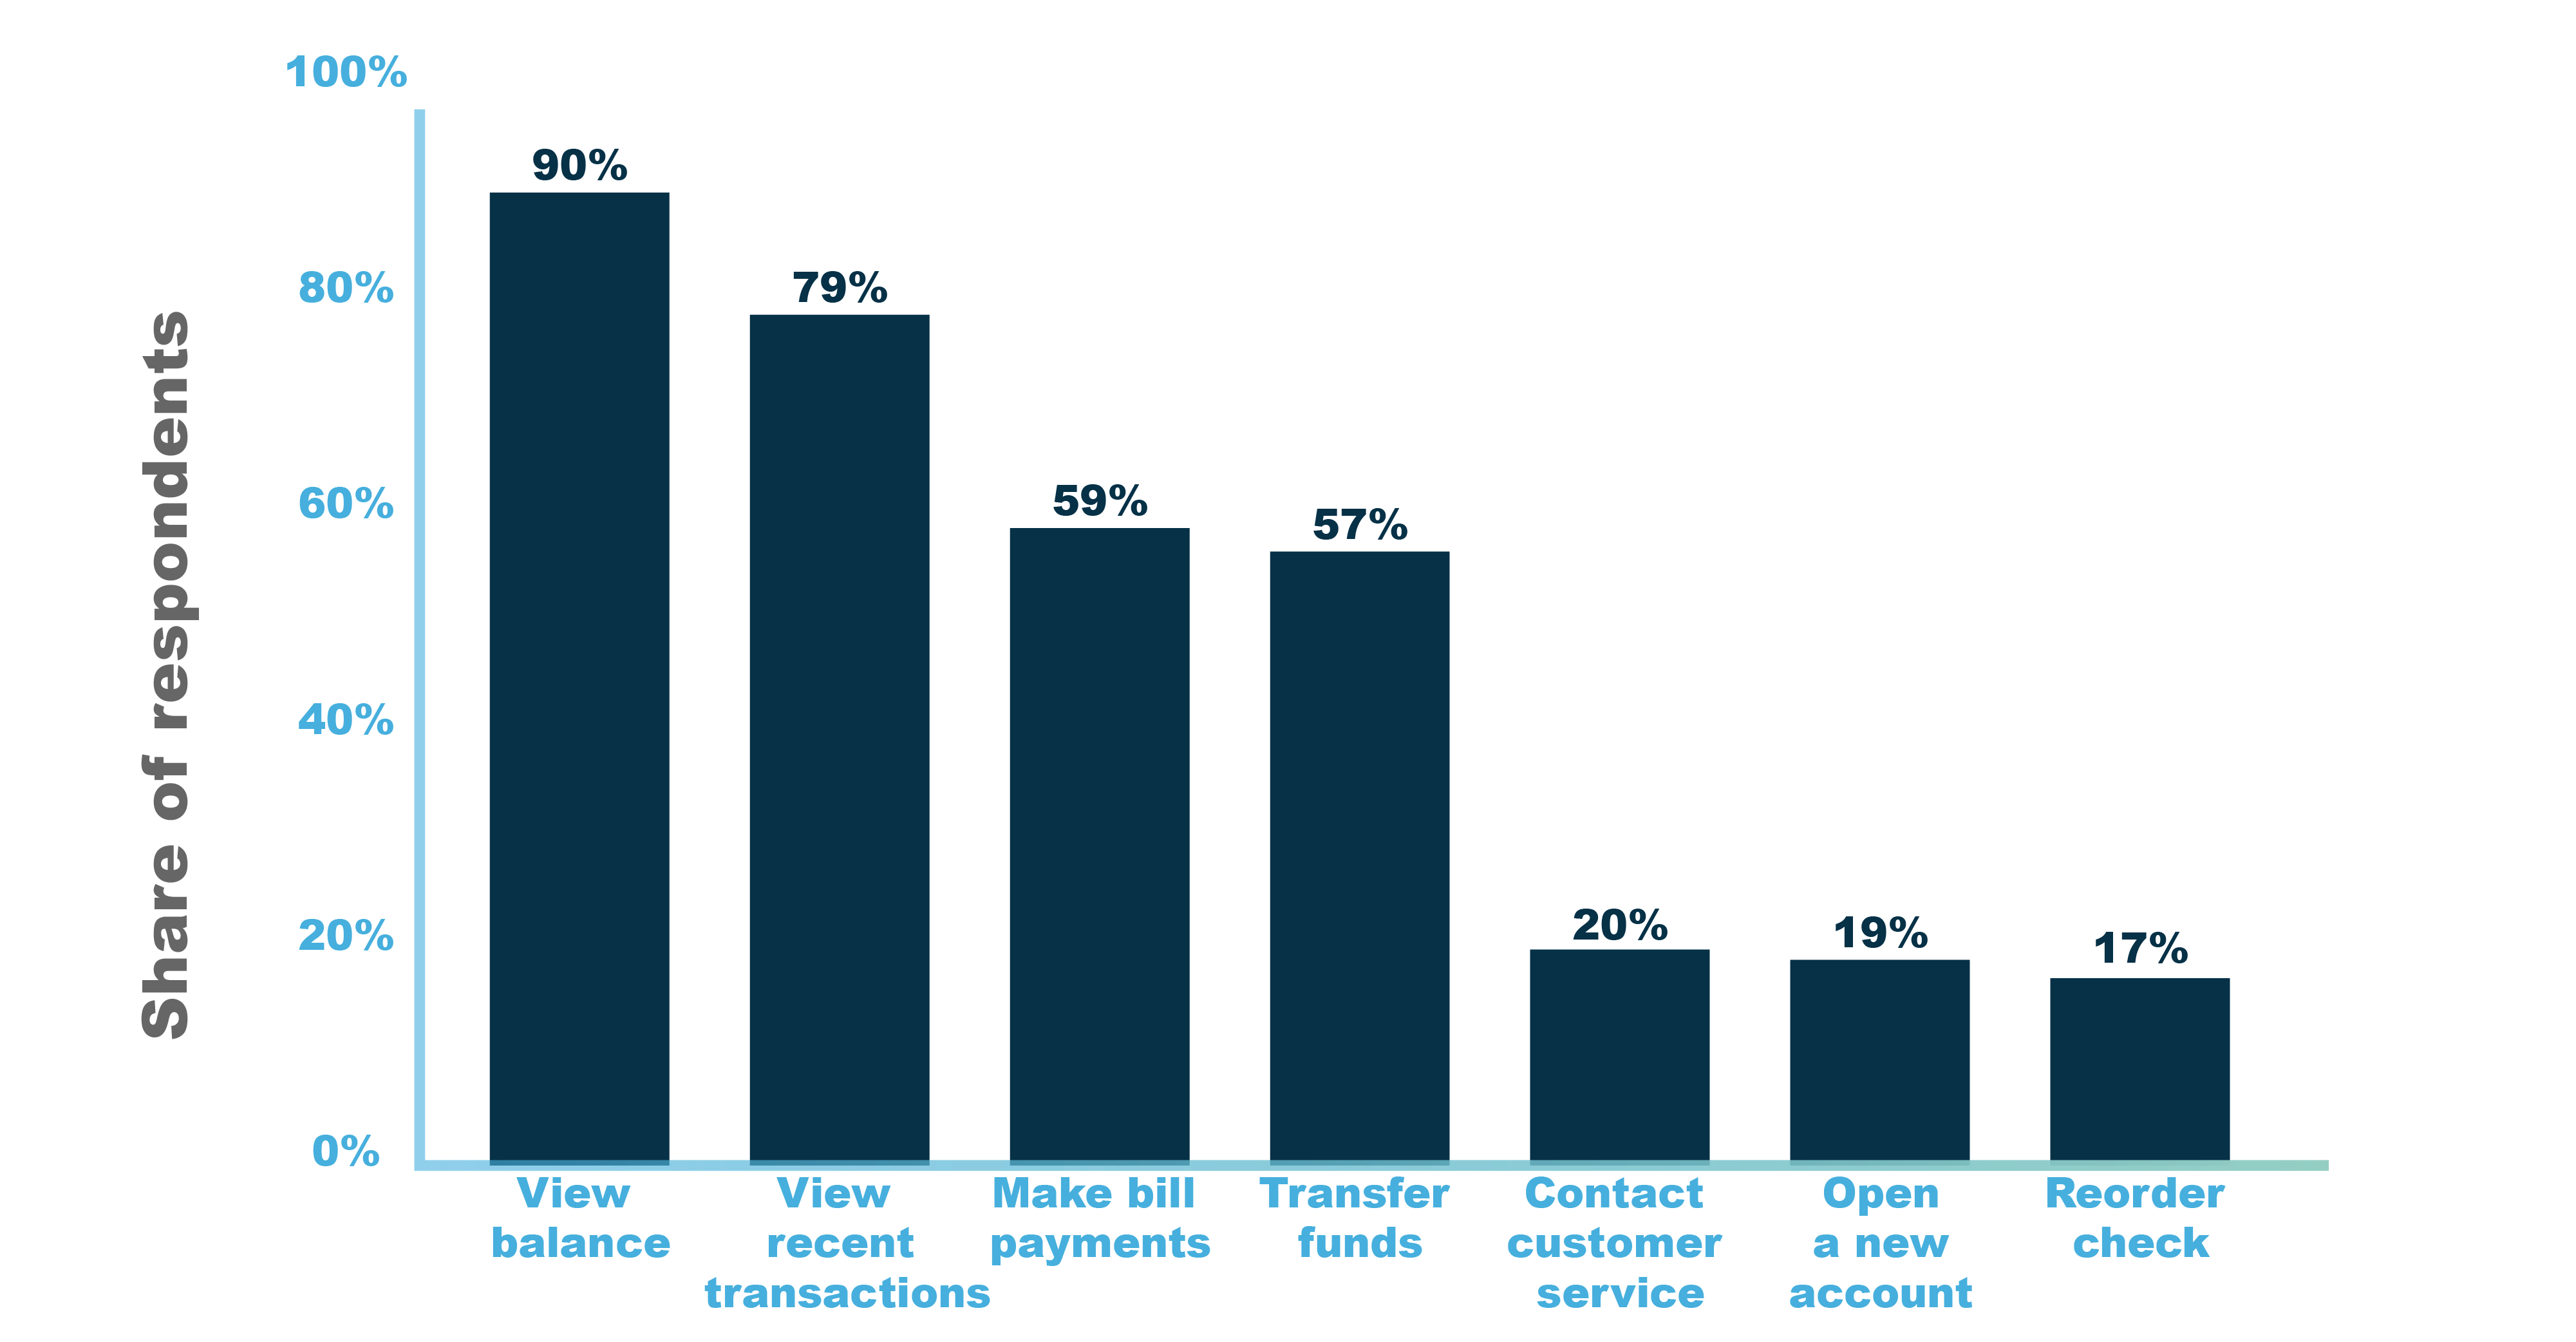 Reasons for using mobile banking apps in the United States in 201